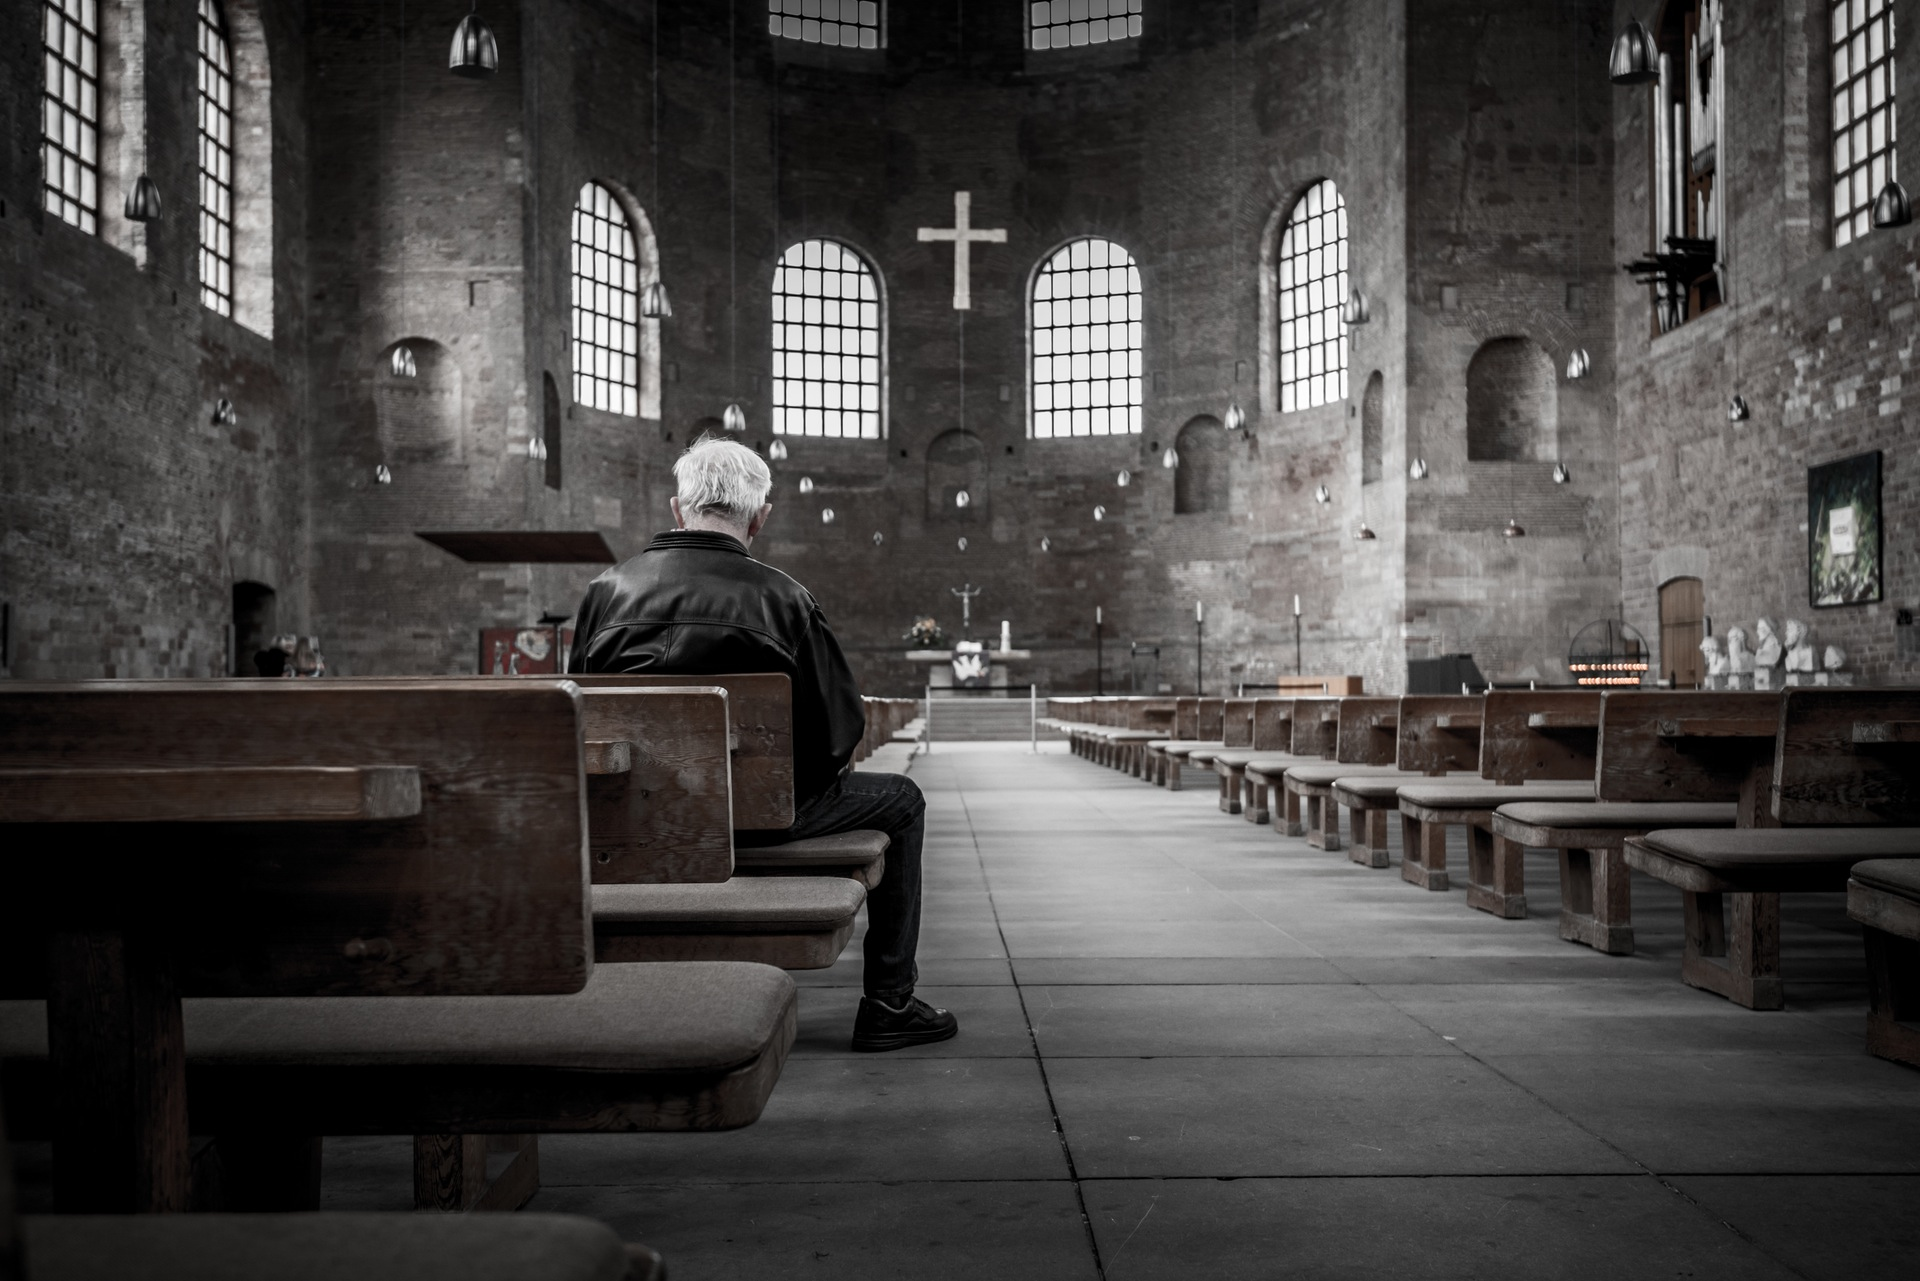 Man in cathedral photo